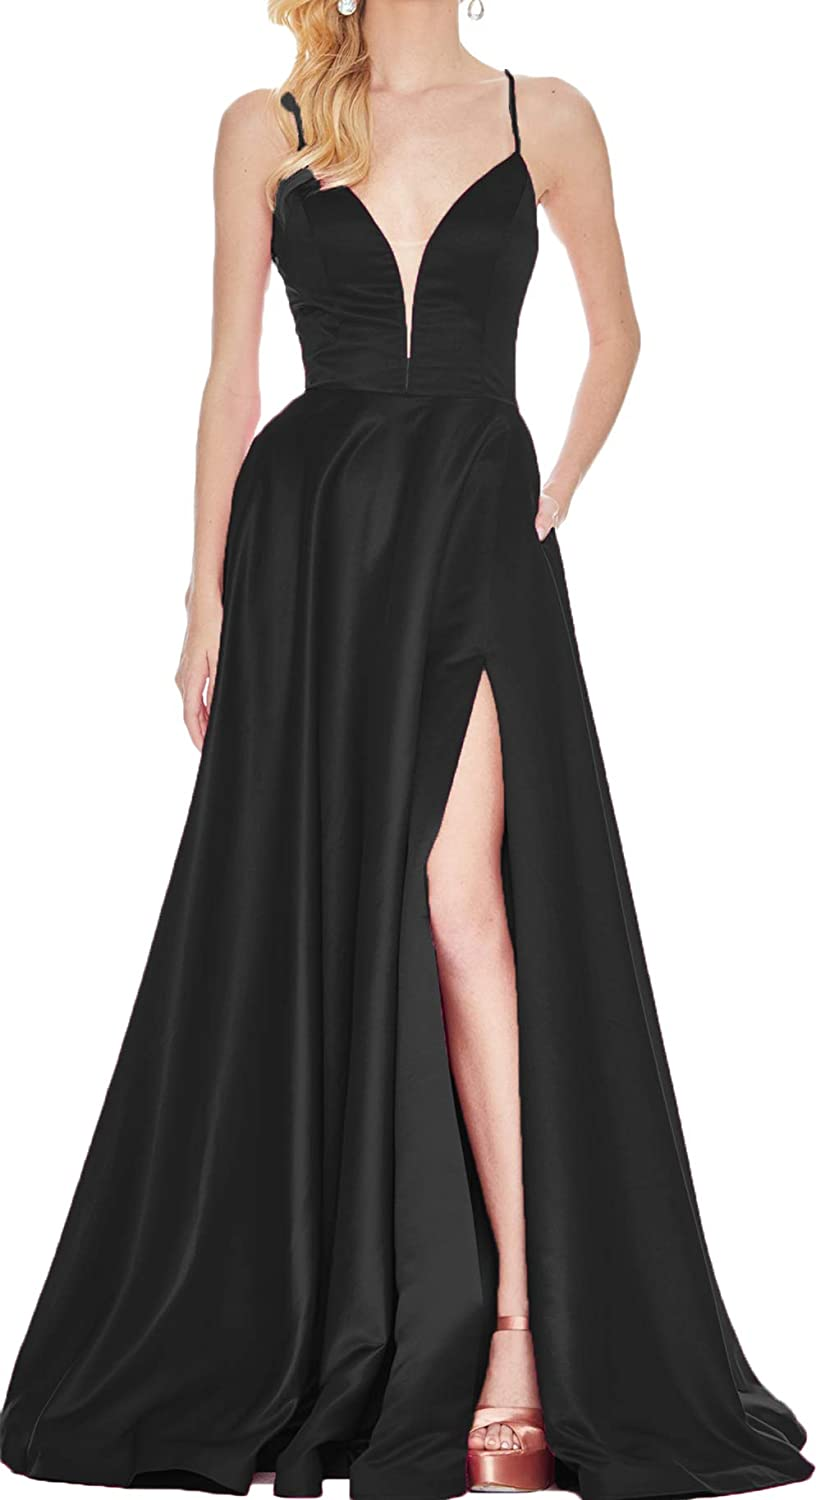 Black Rmaytiked Womens V Neck Spaghetti Strap Prom Dresses Long Side Slit Backless Formal Evening Ball Gowns with Pockets